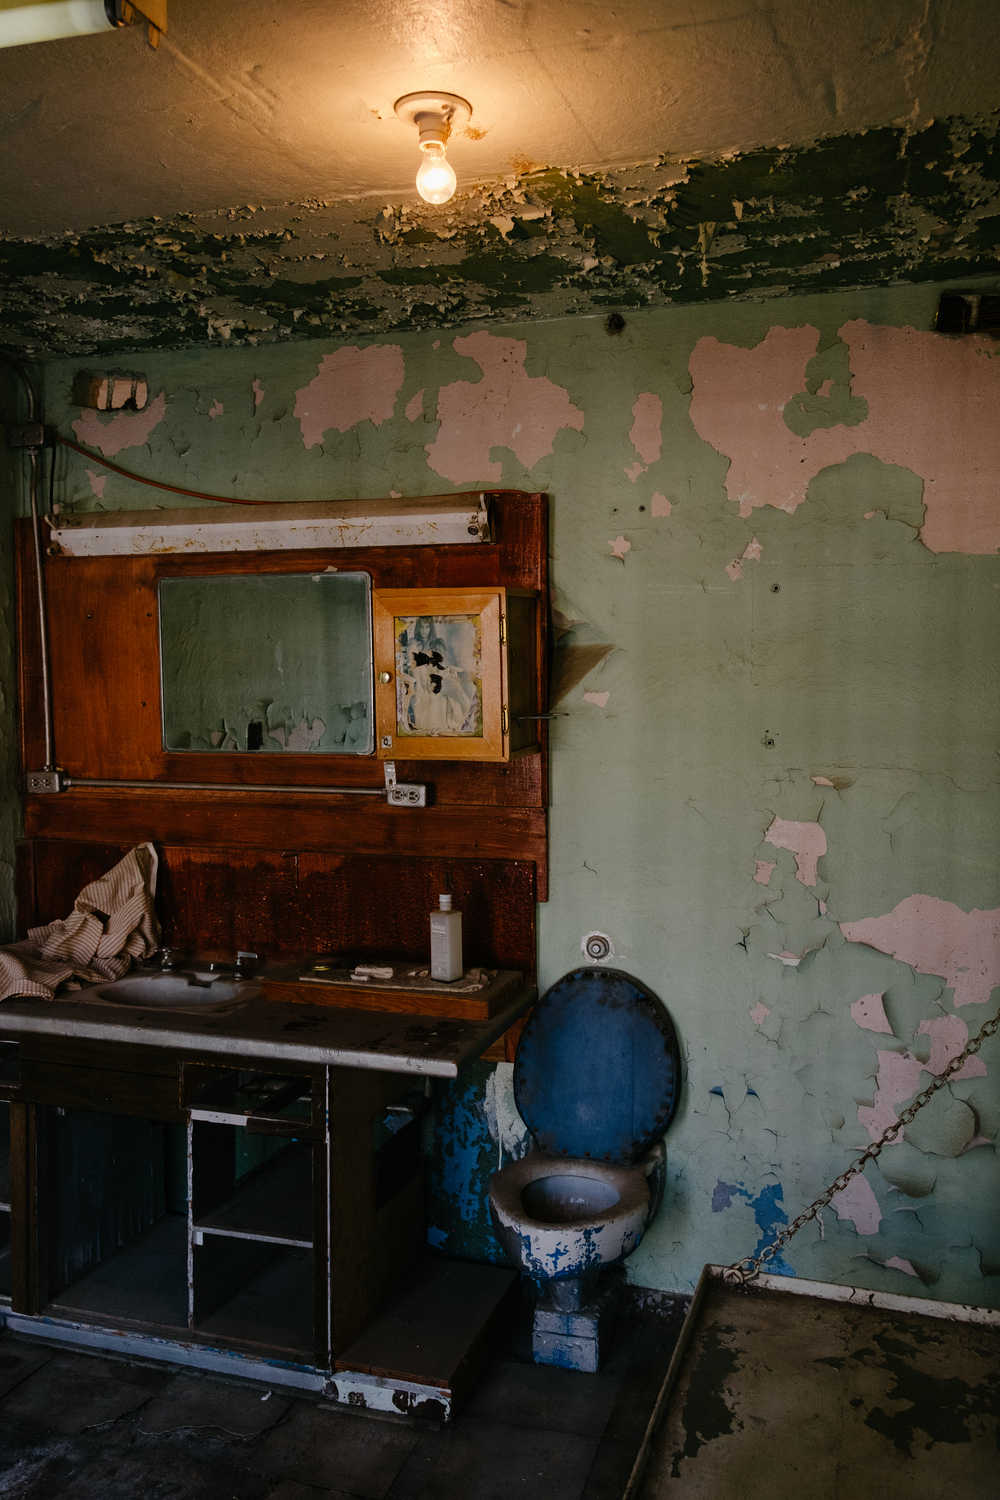 The old barbers cell, left to deteriorate as it was.